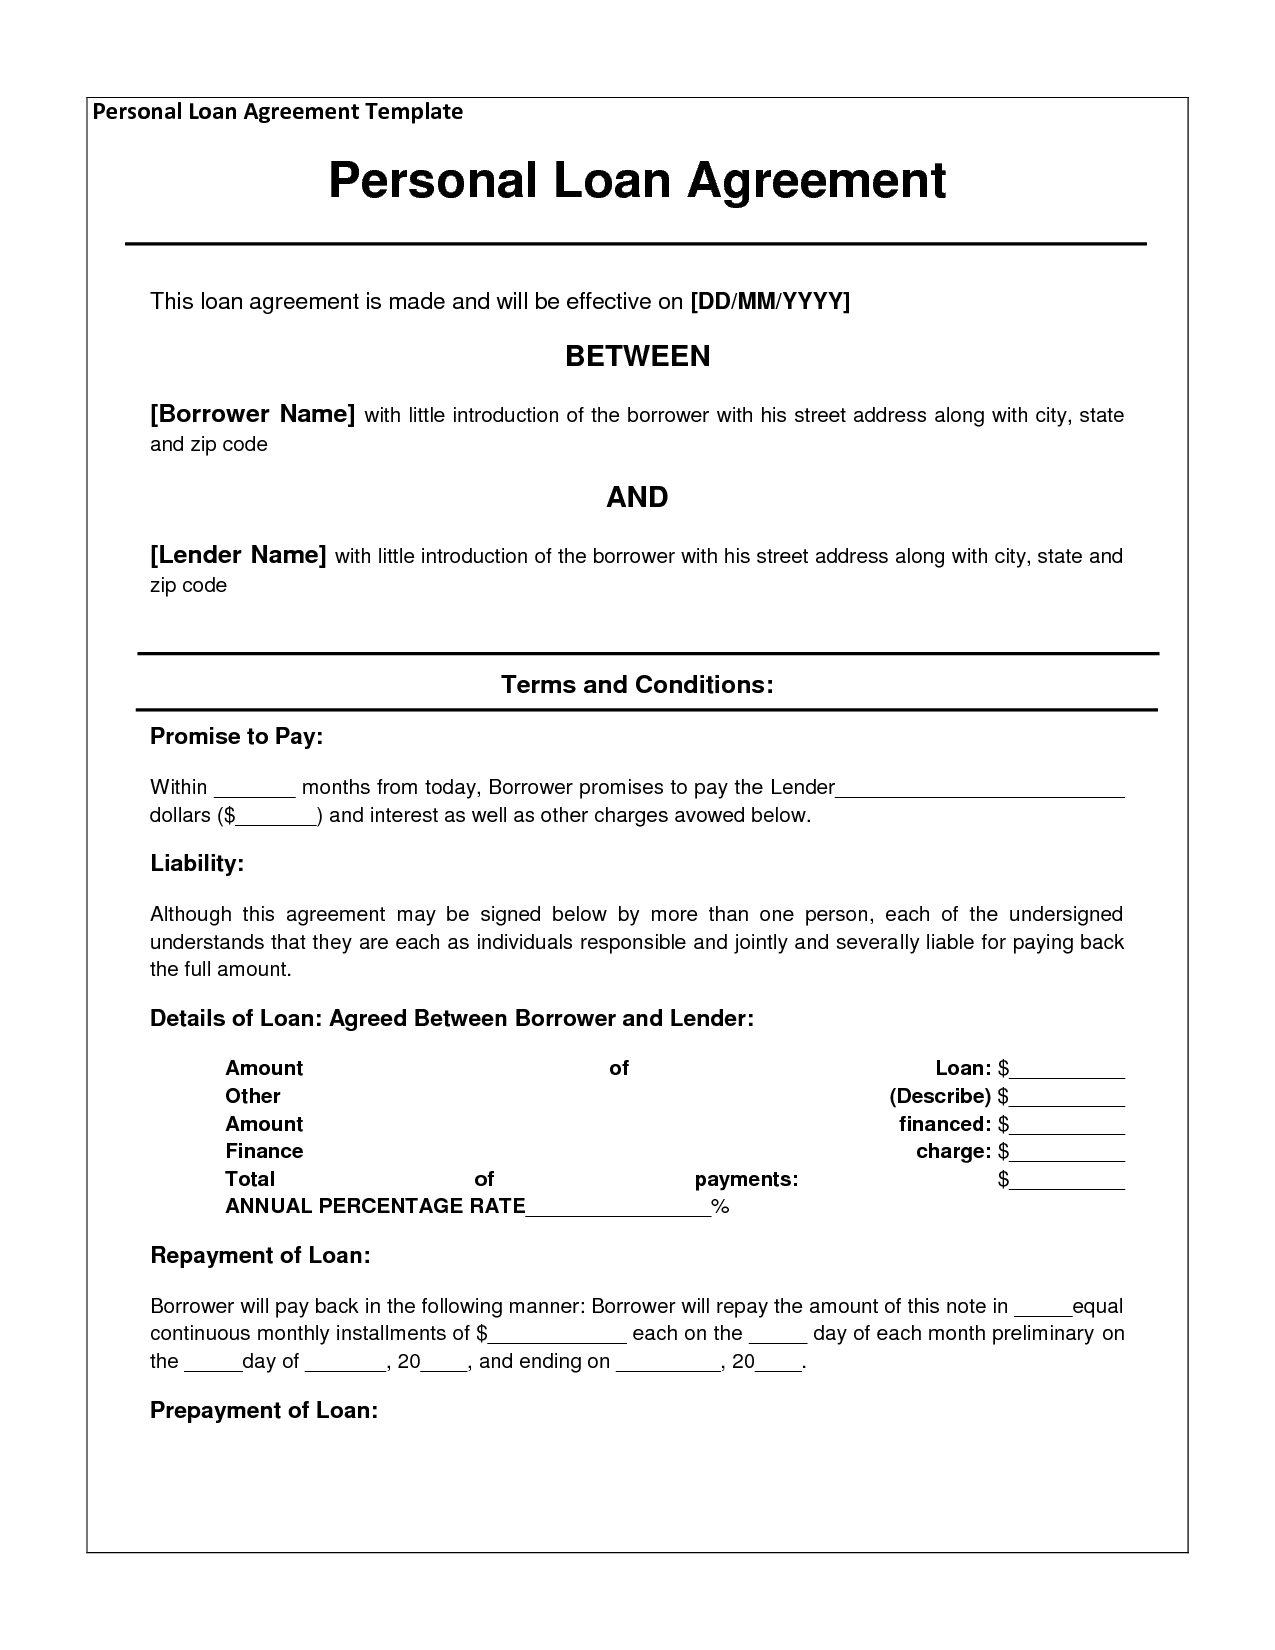 free personal loan agreement form template 1000 approved in 2 private loan agreement. Black Bedroom Furniture Sets. Home Design Ideas